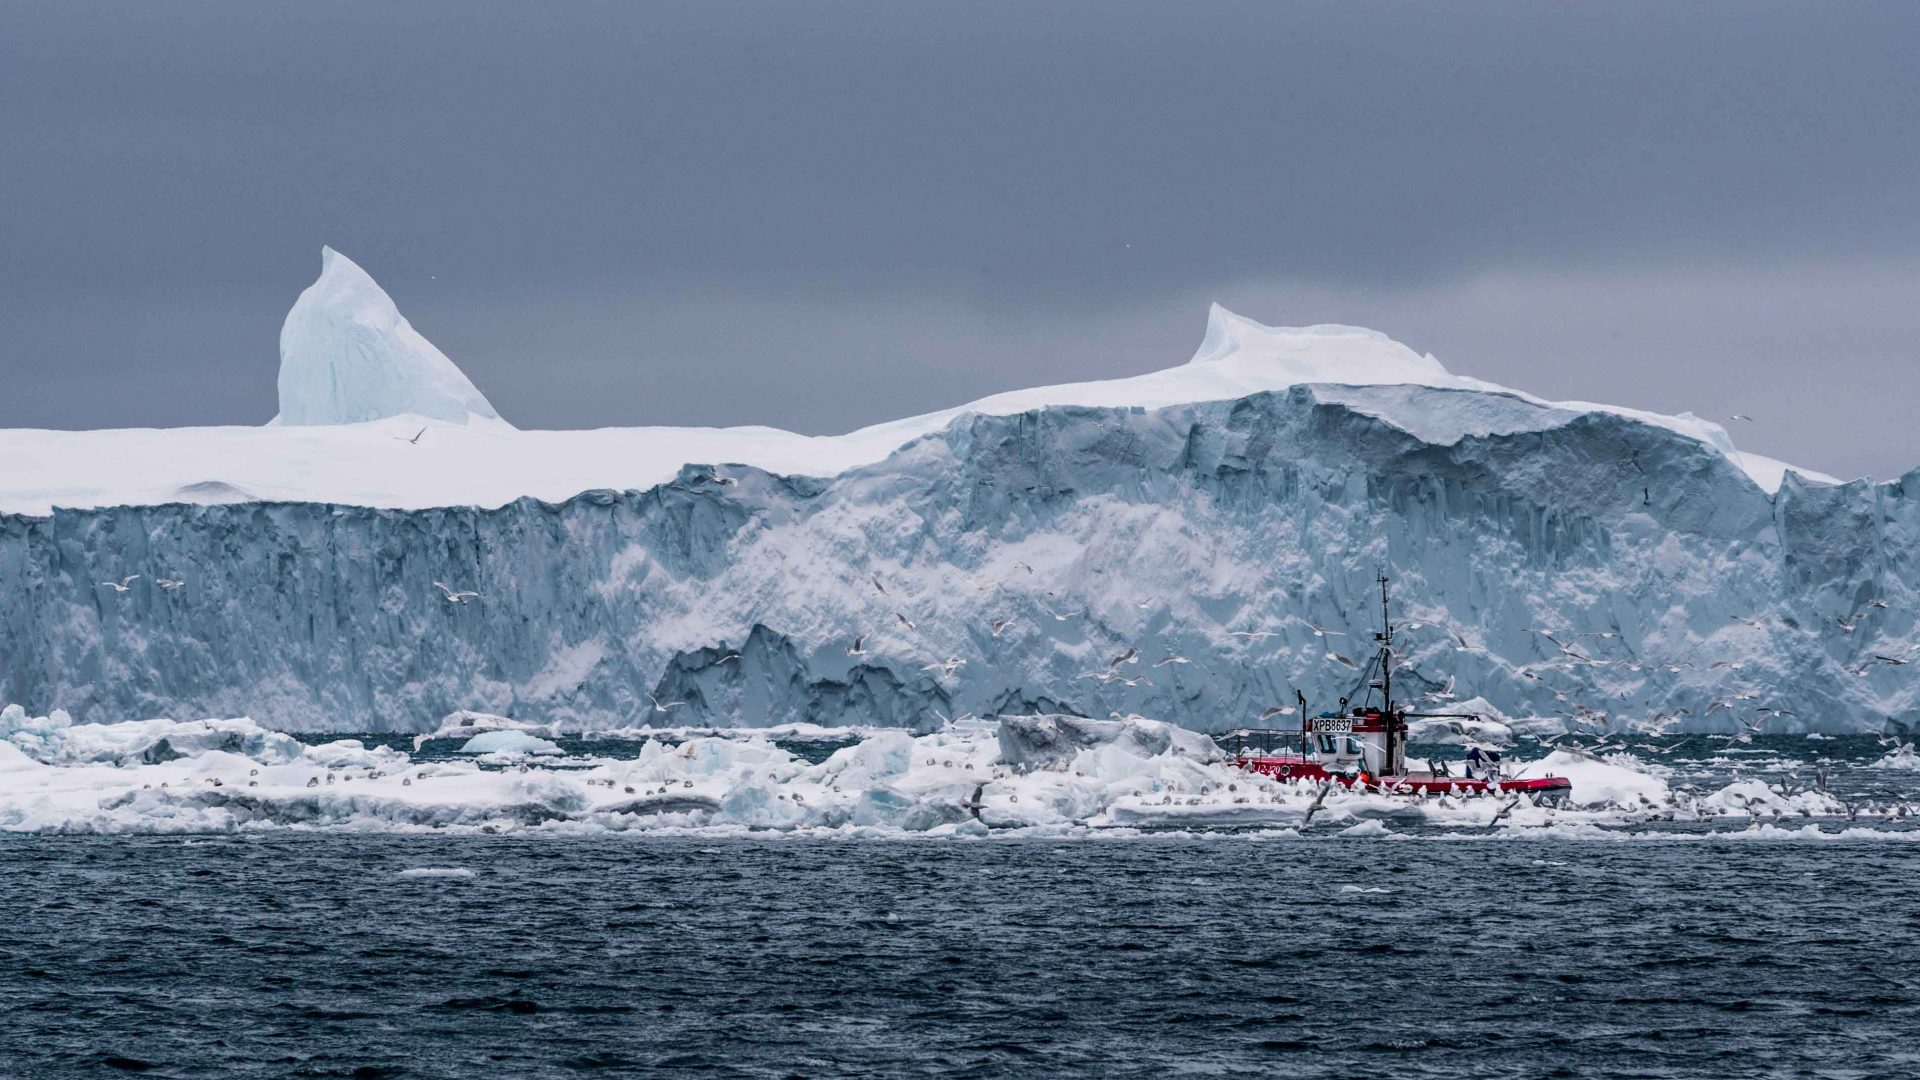 In the shadow of an iceberg as tall as a skyscraper, a fishing trawler in Disko bay pulls in its catch while sea birds circle overhead.